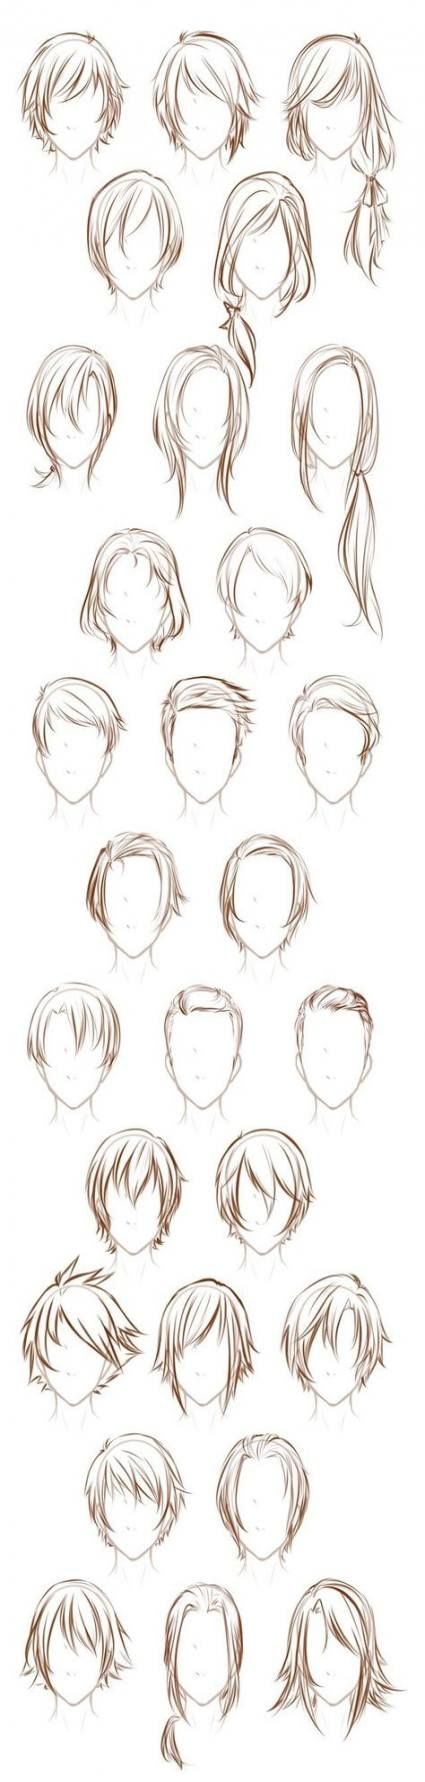 Hair tutorial drawing character design sketch 43 ideas for 2019